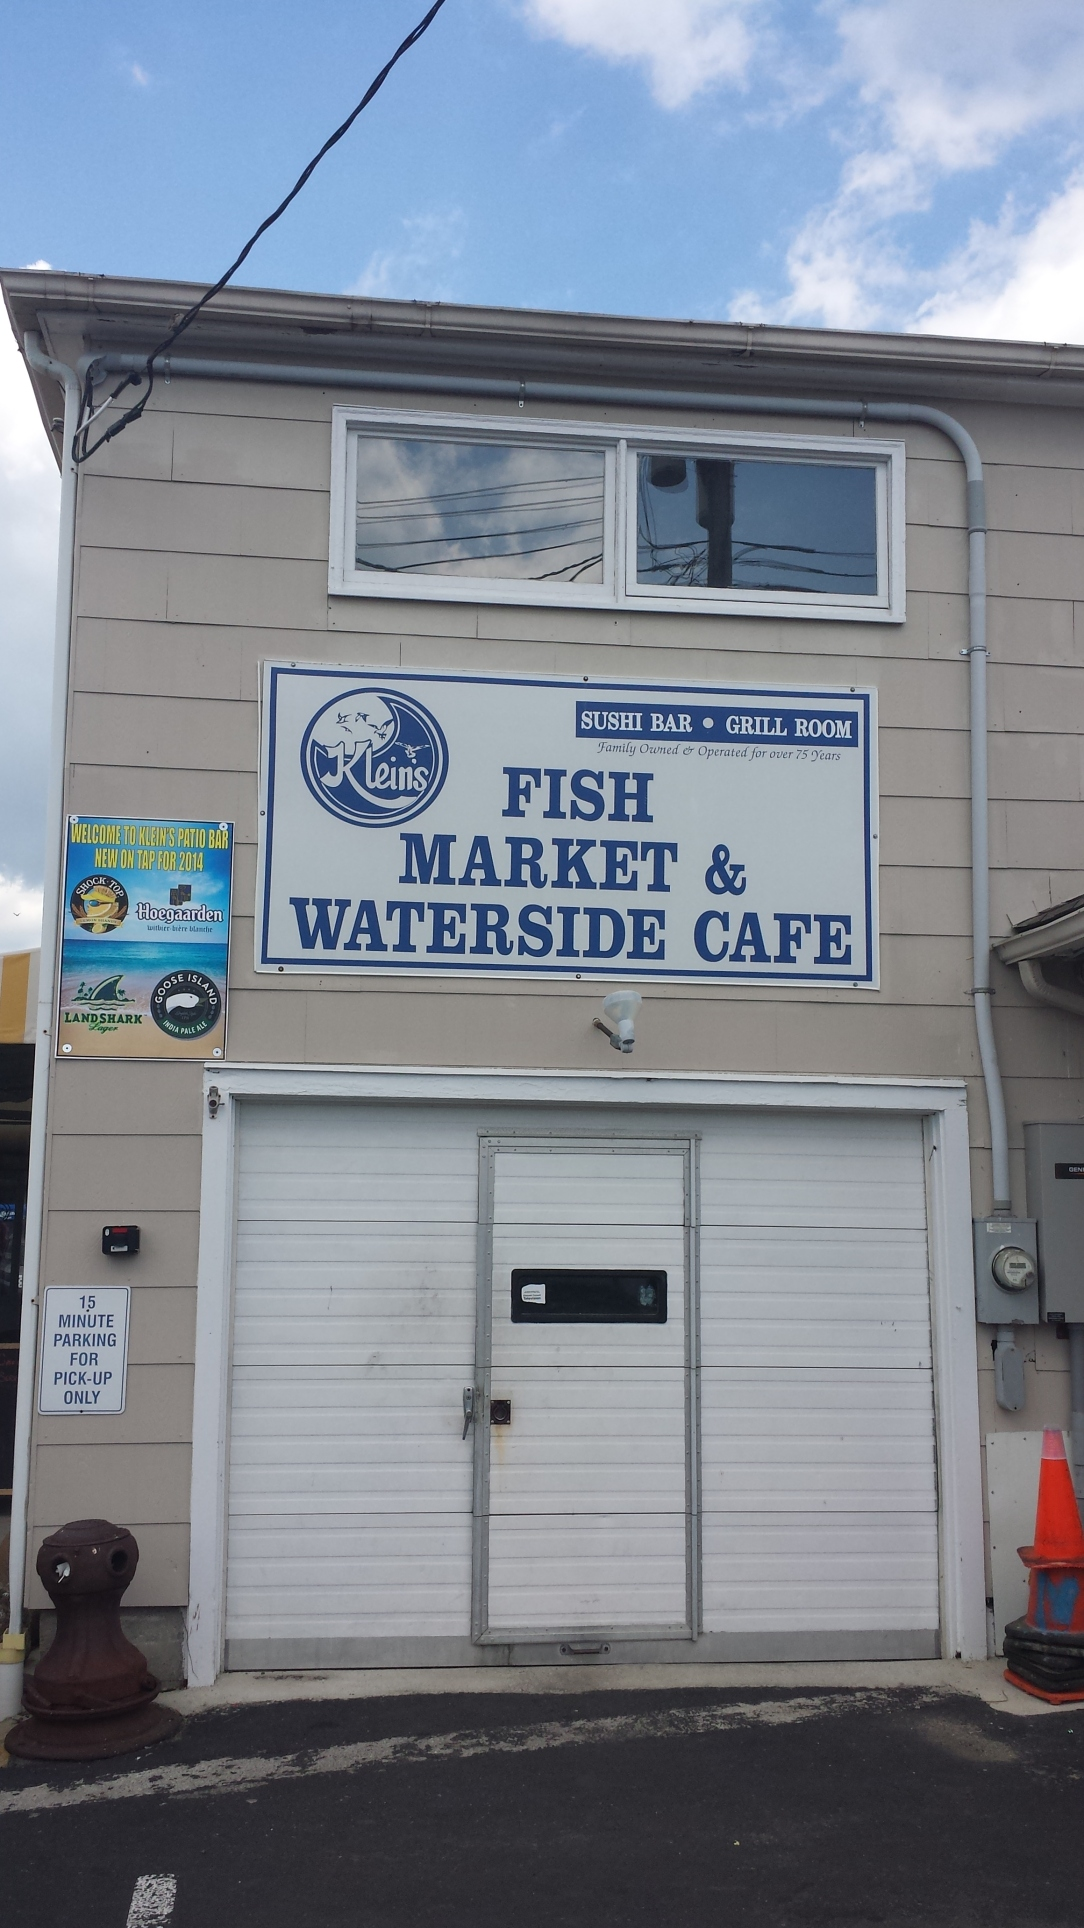 Klein's Fish Market & Waterside Cafe